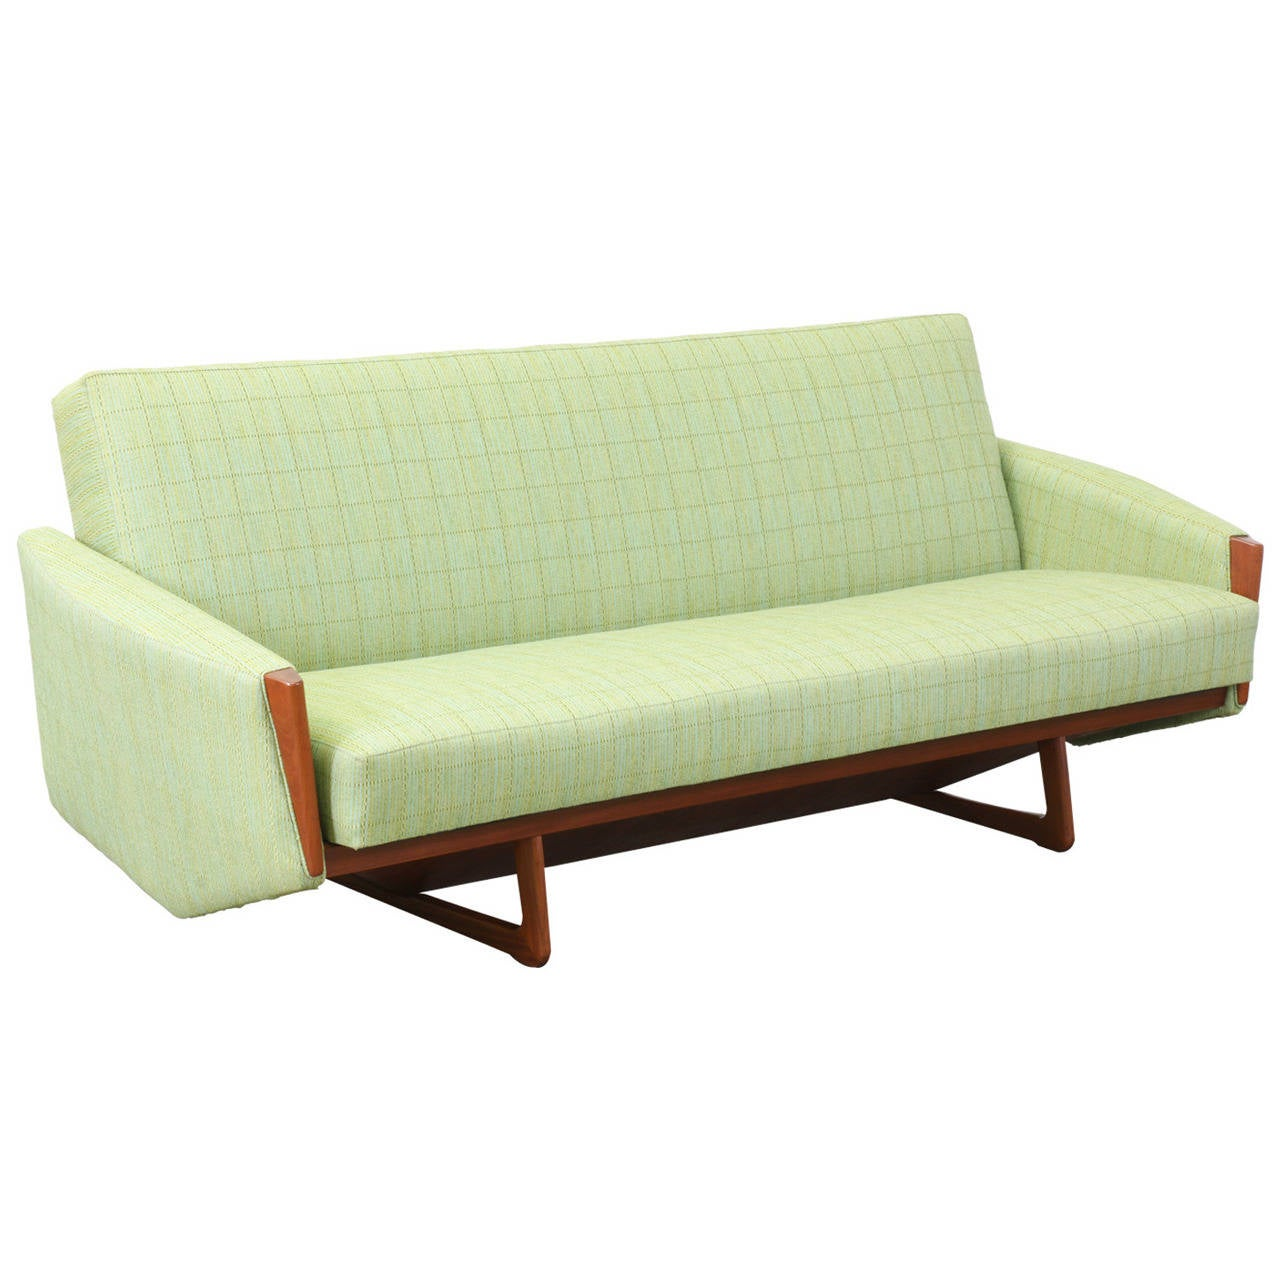 Danish Modern Teak Sofa Bed At 1stdibs